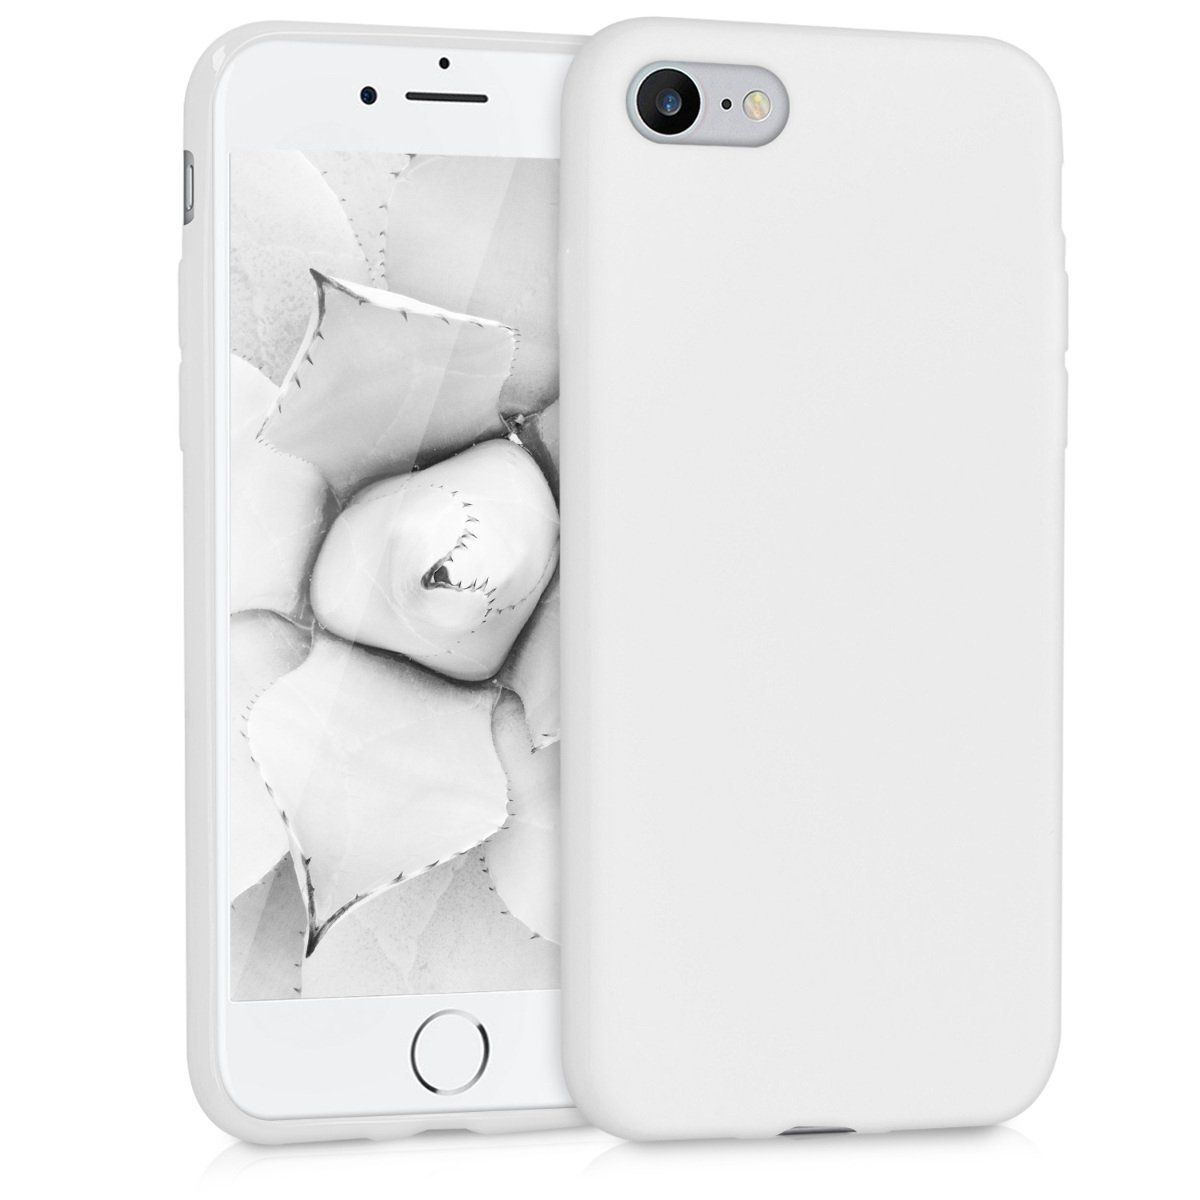 Kwmobile Chic Tpu Silicone Case For The Apple Iphone 7 8 In White Matt Iphone Apple Iphone Iphone 7